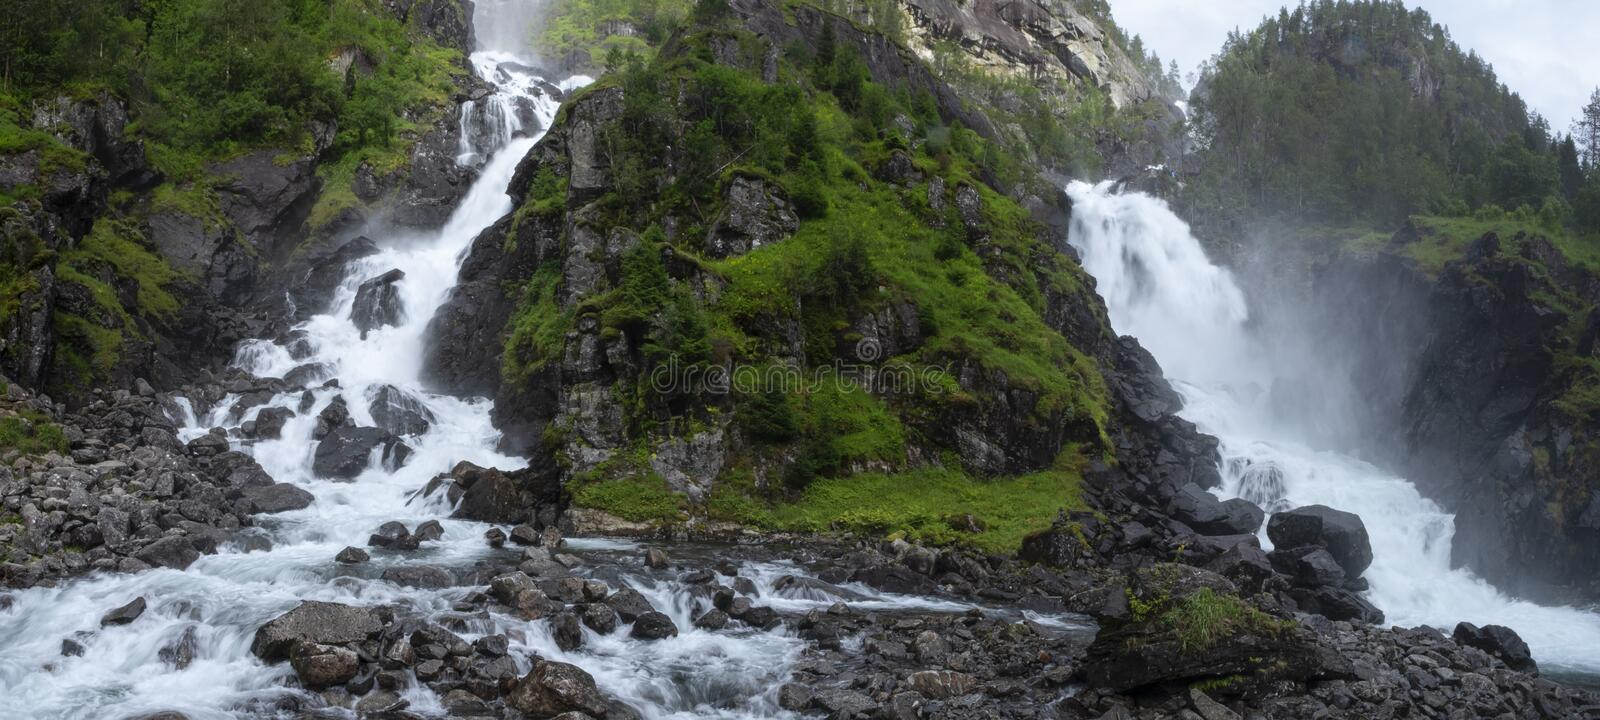 Latefossen waterfalls in Norway stock photography